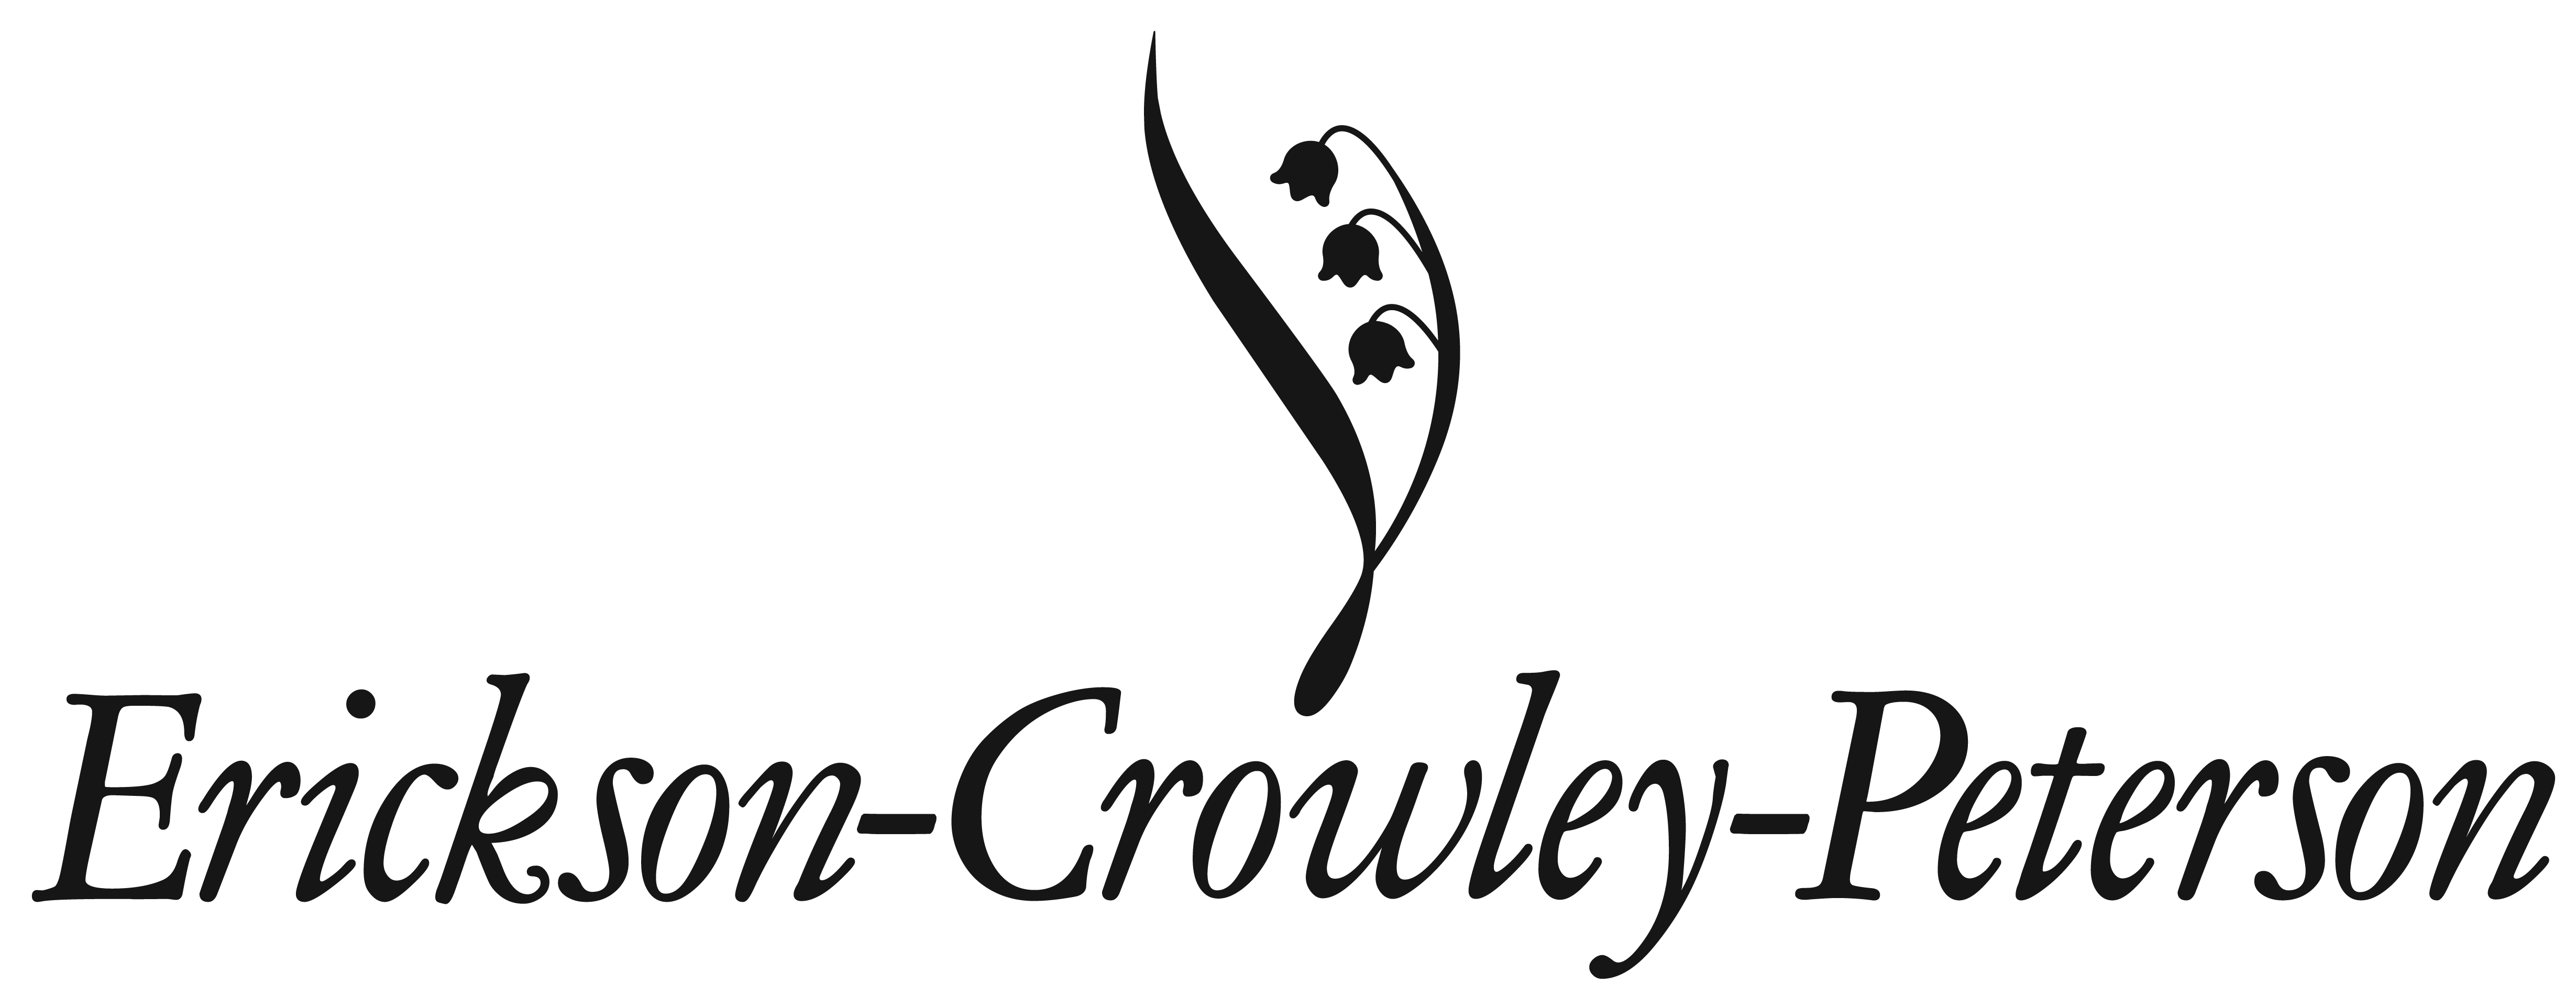 Erickson-Crowley-Peterson Funeral Home